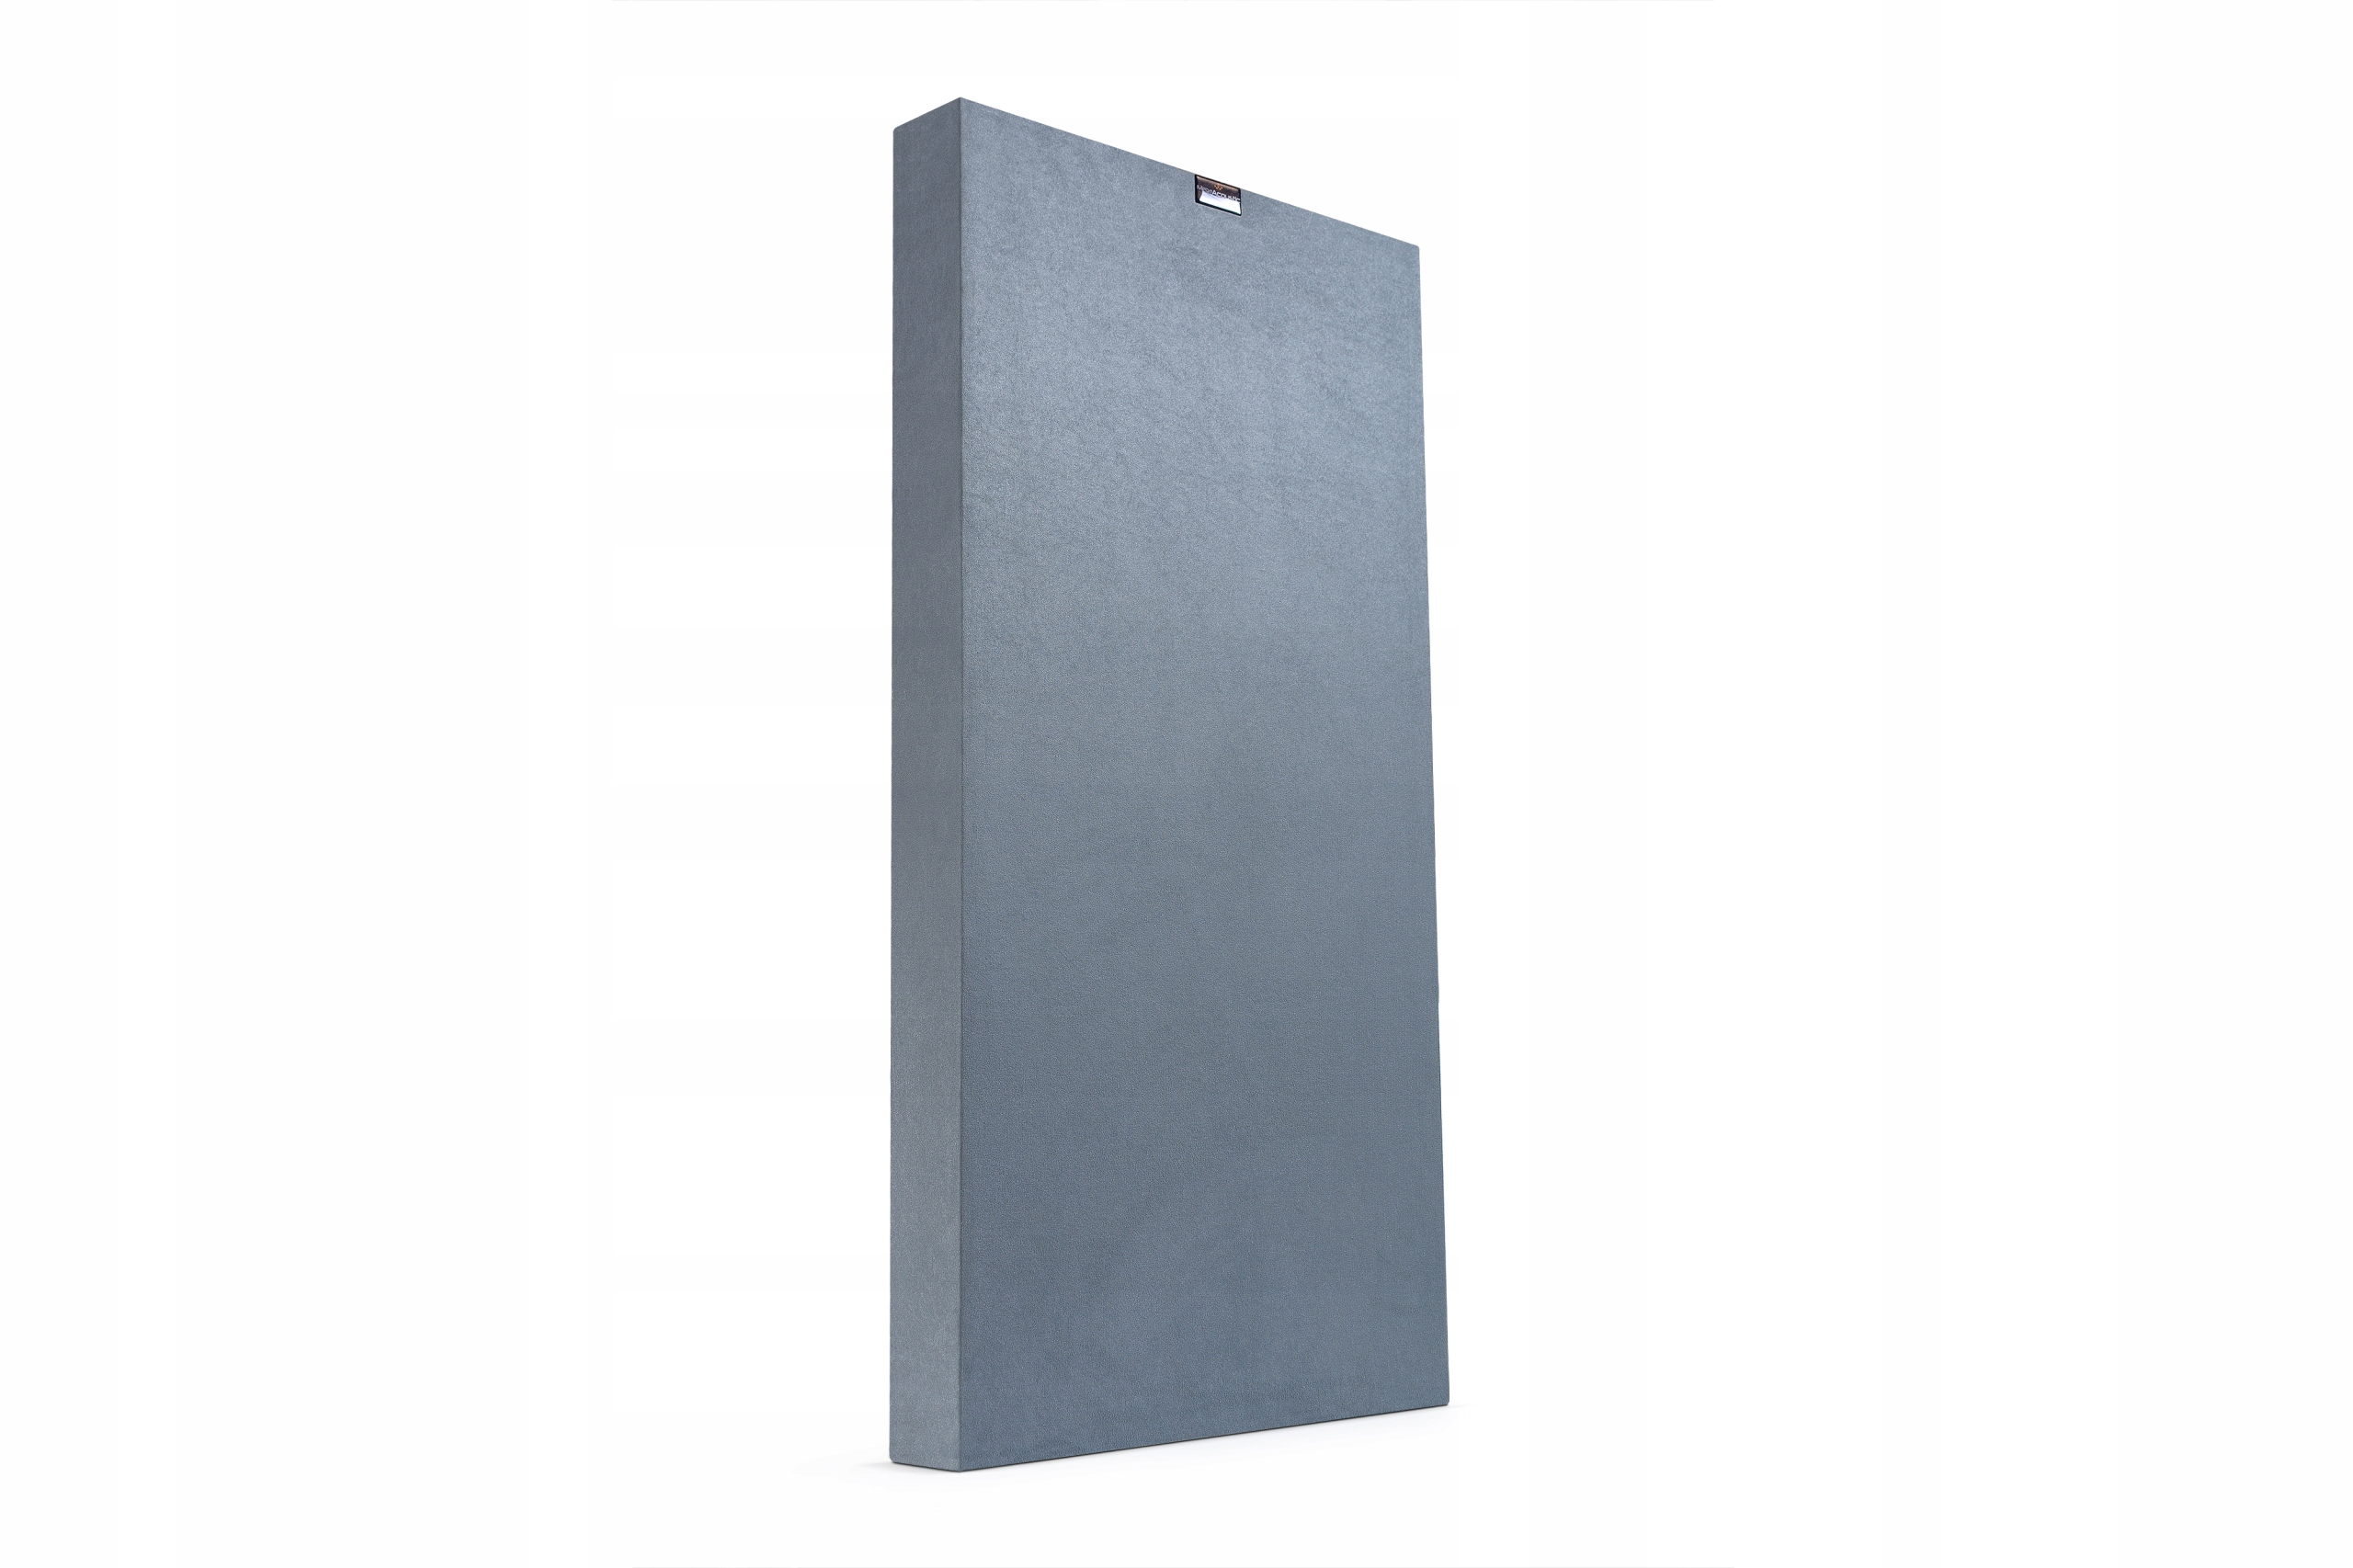 Item Panel, absorbing mineral wool 120X60